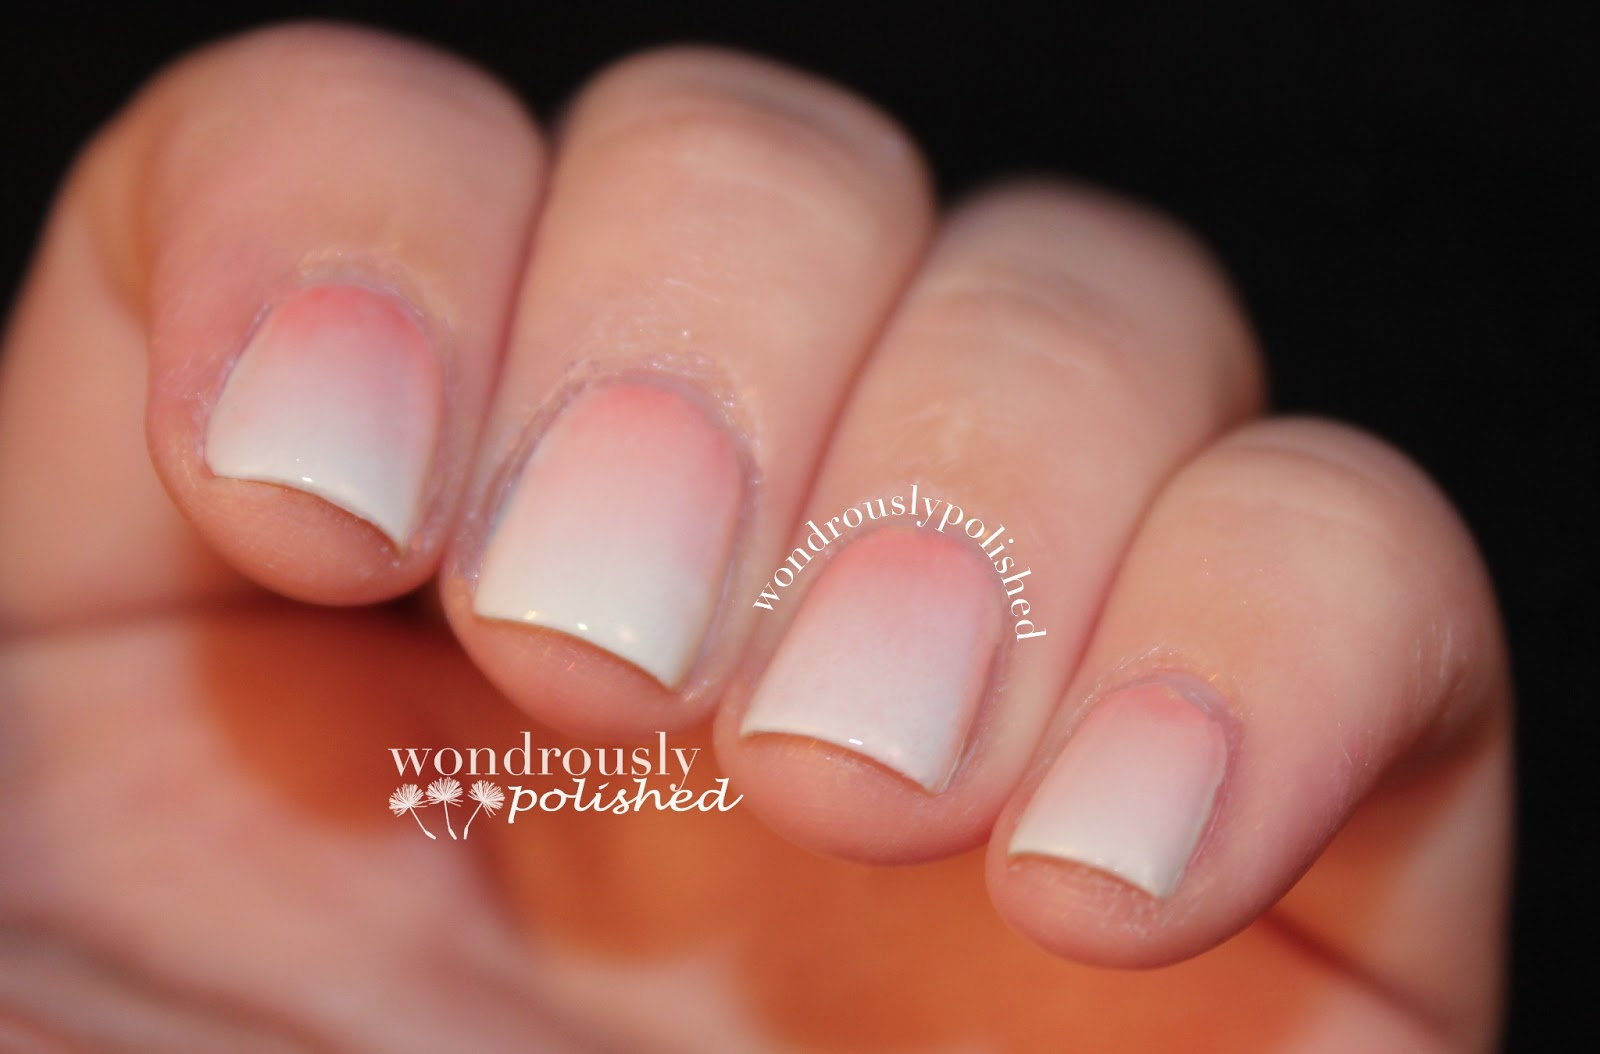 Wondrously Polished: March Nail Art Challenge - Day 3: Gradient